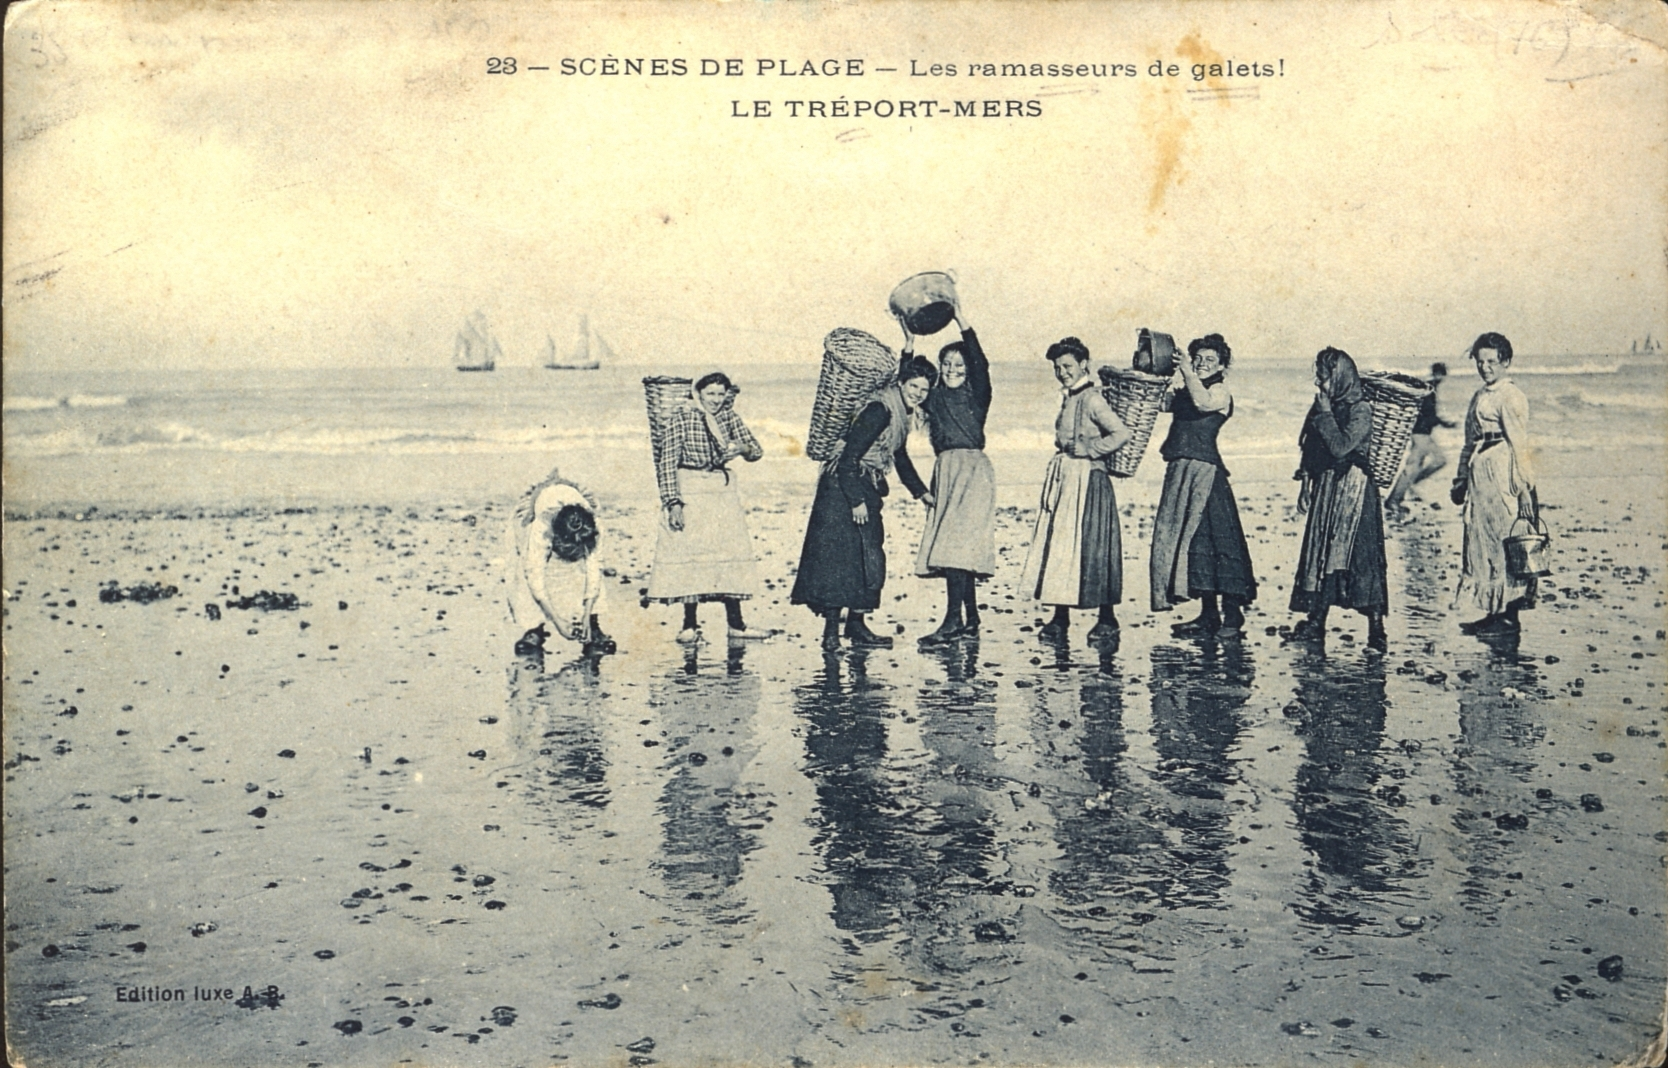 Le Treport-Mers,  Normandy, - Le ramasseurs de galets  (the pebble gatherers) early 1900s